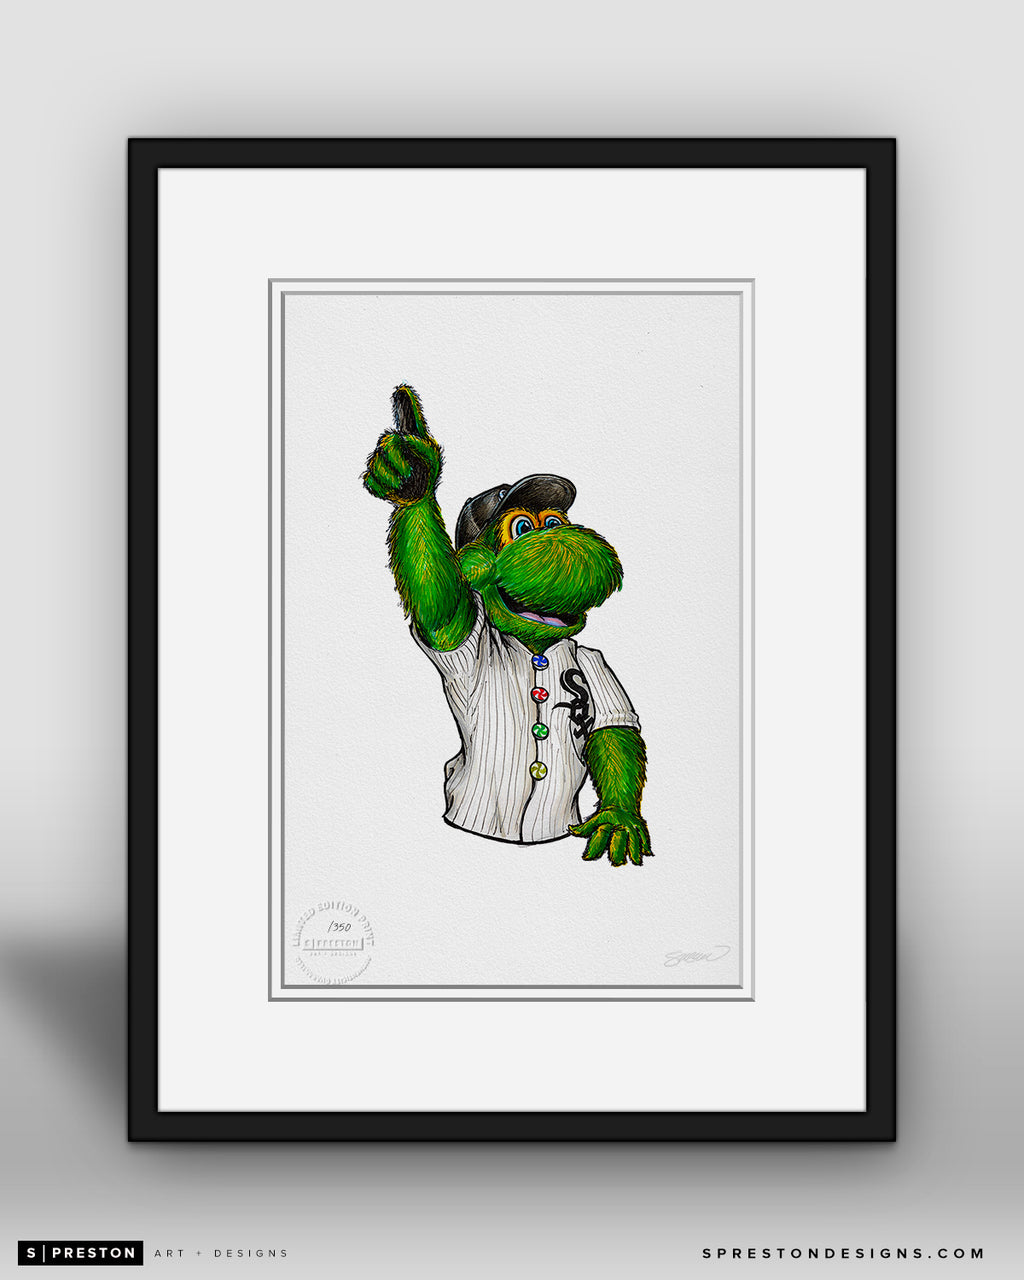 Southpaw - Chicago White Sox Mascot Ink Sketch Print